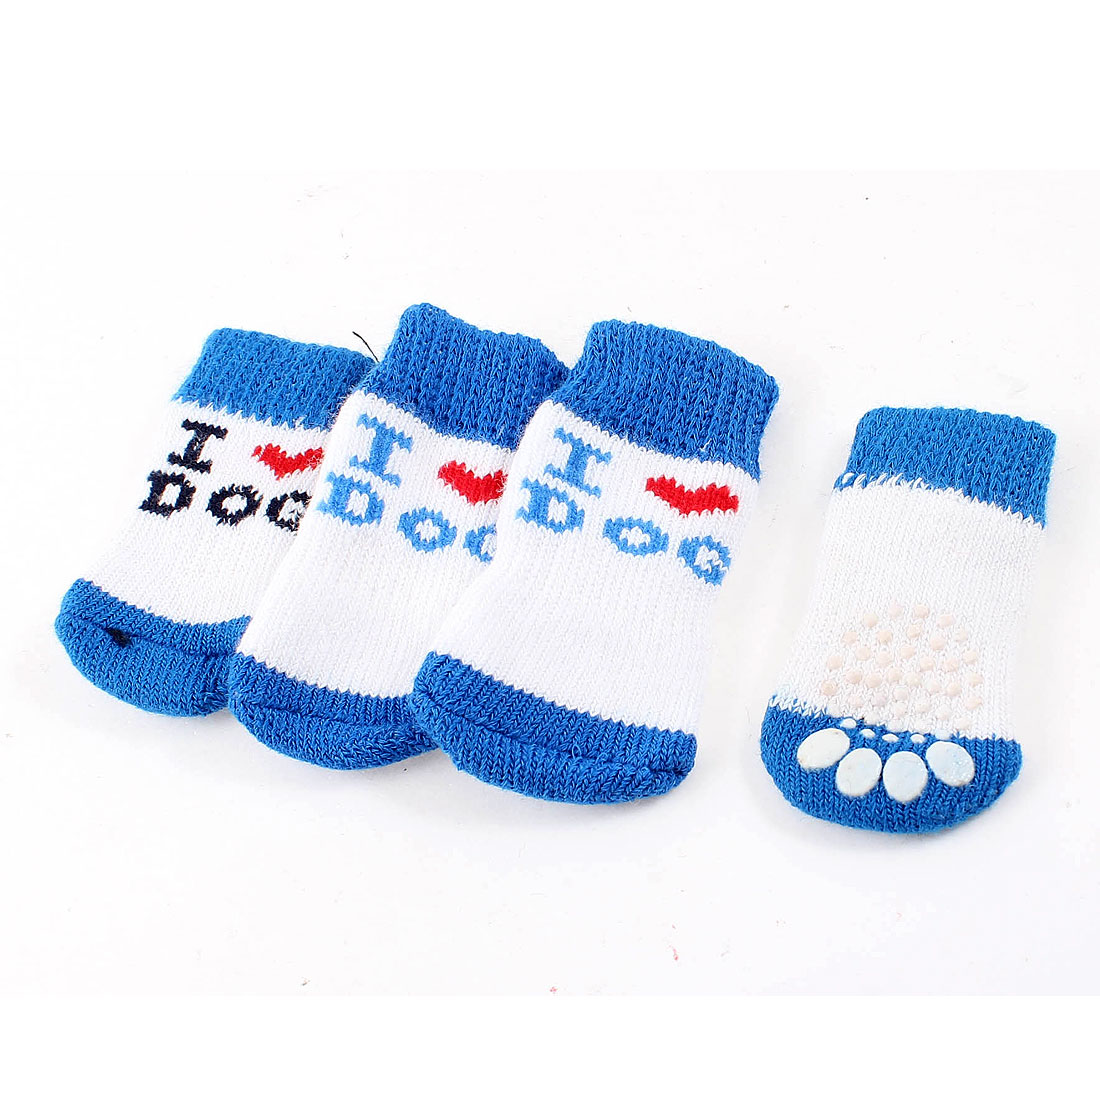 2 Pairs White Blue Nonslip Paw Printed Acrylic Doggie Puppy Pet Socks Size S